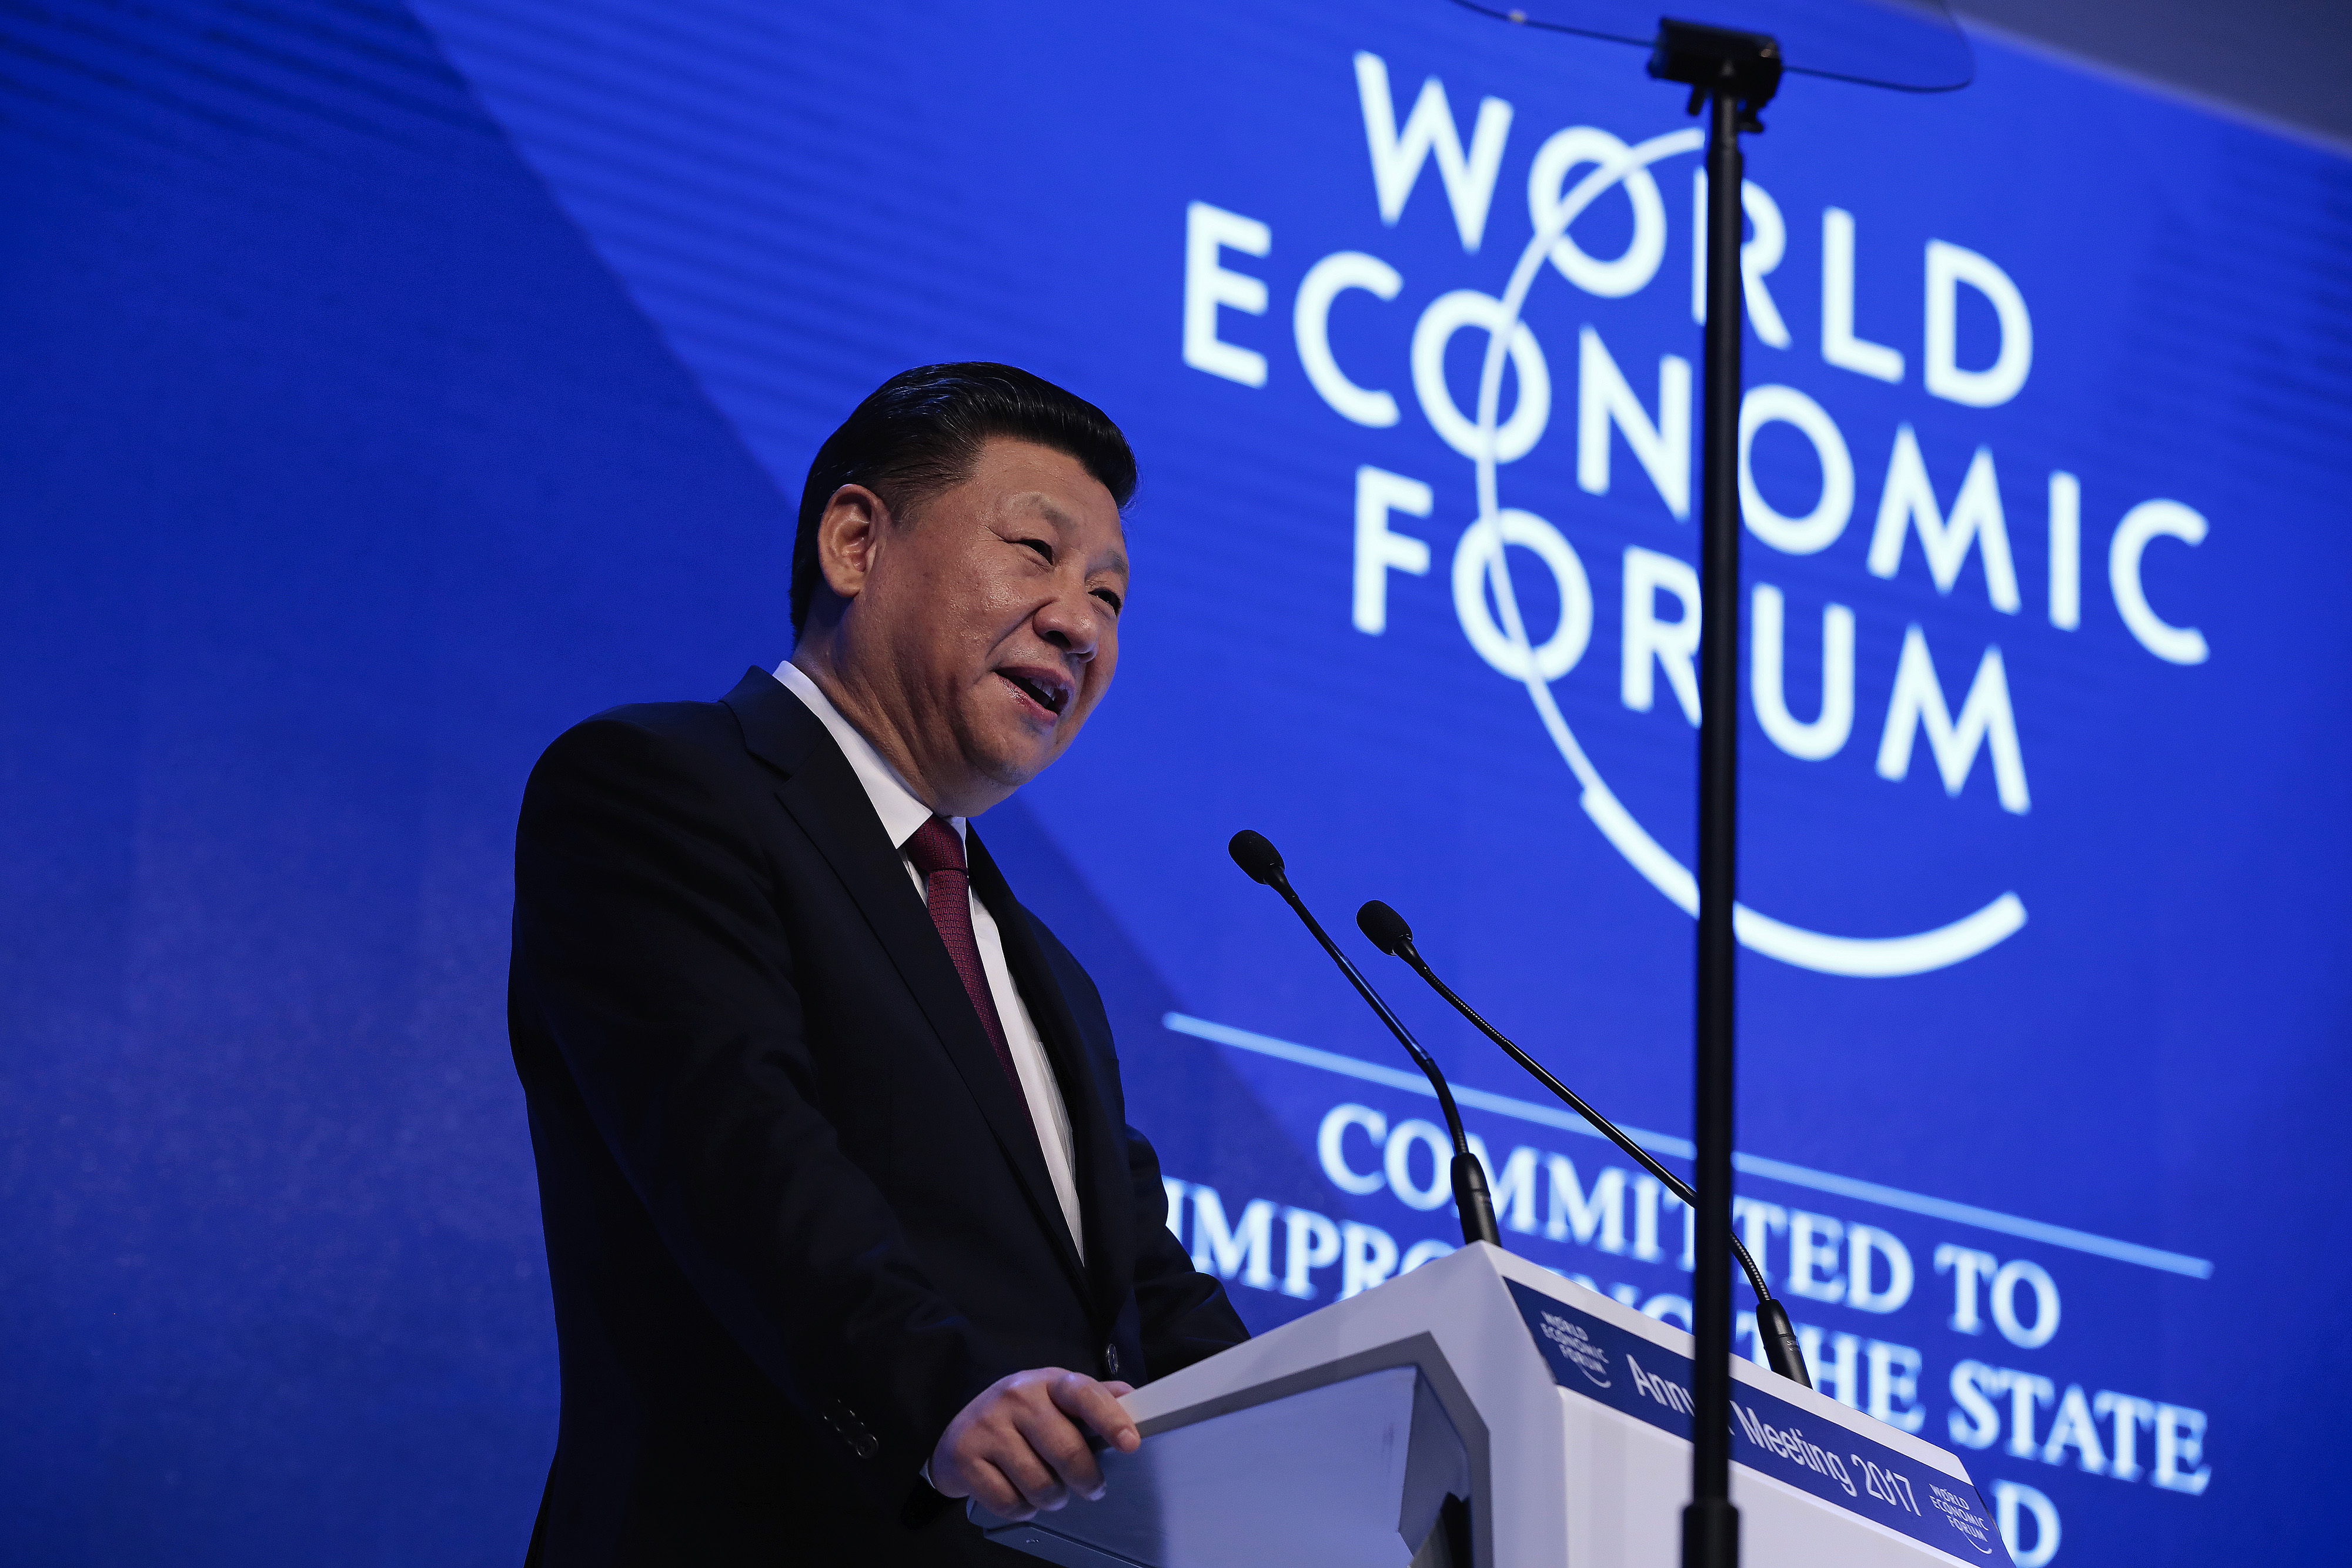 Xi Jinping, China's president, speaks during the opening plenary session of the World Economic Forum (WEF) annual meeting in Davos, Switzerland, on Tuesday, Jan. 17, 2017.